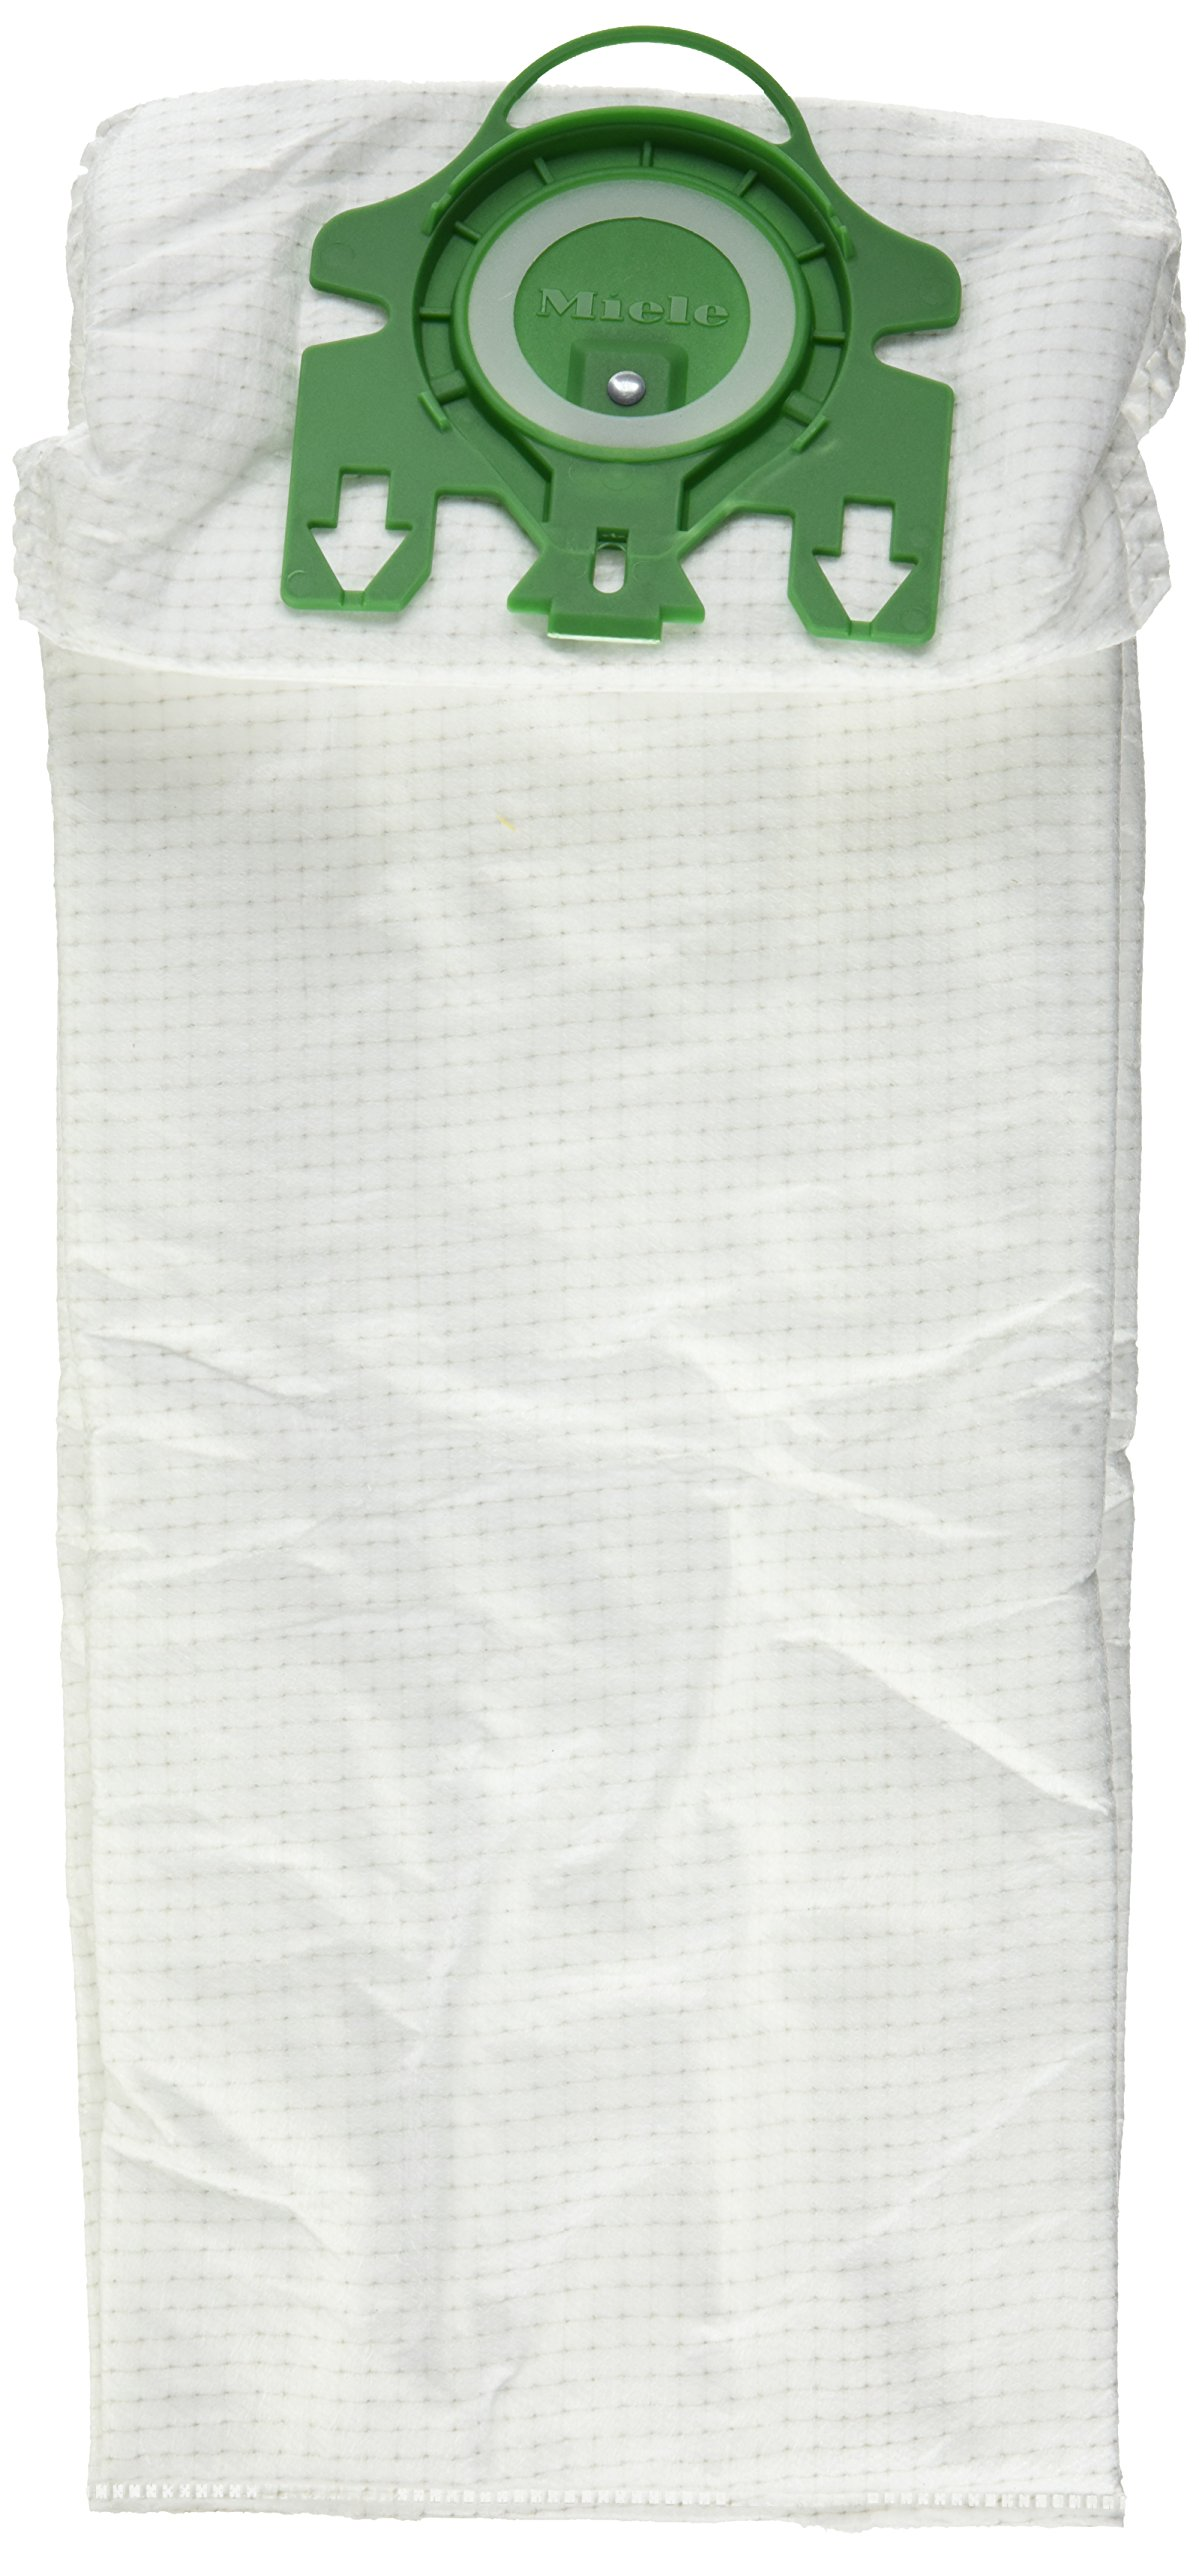 Miele Type U AirClean Bags & Filters, For S7000-S7999 UprightUpright, 8 Pack by Miele